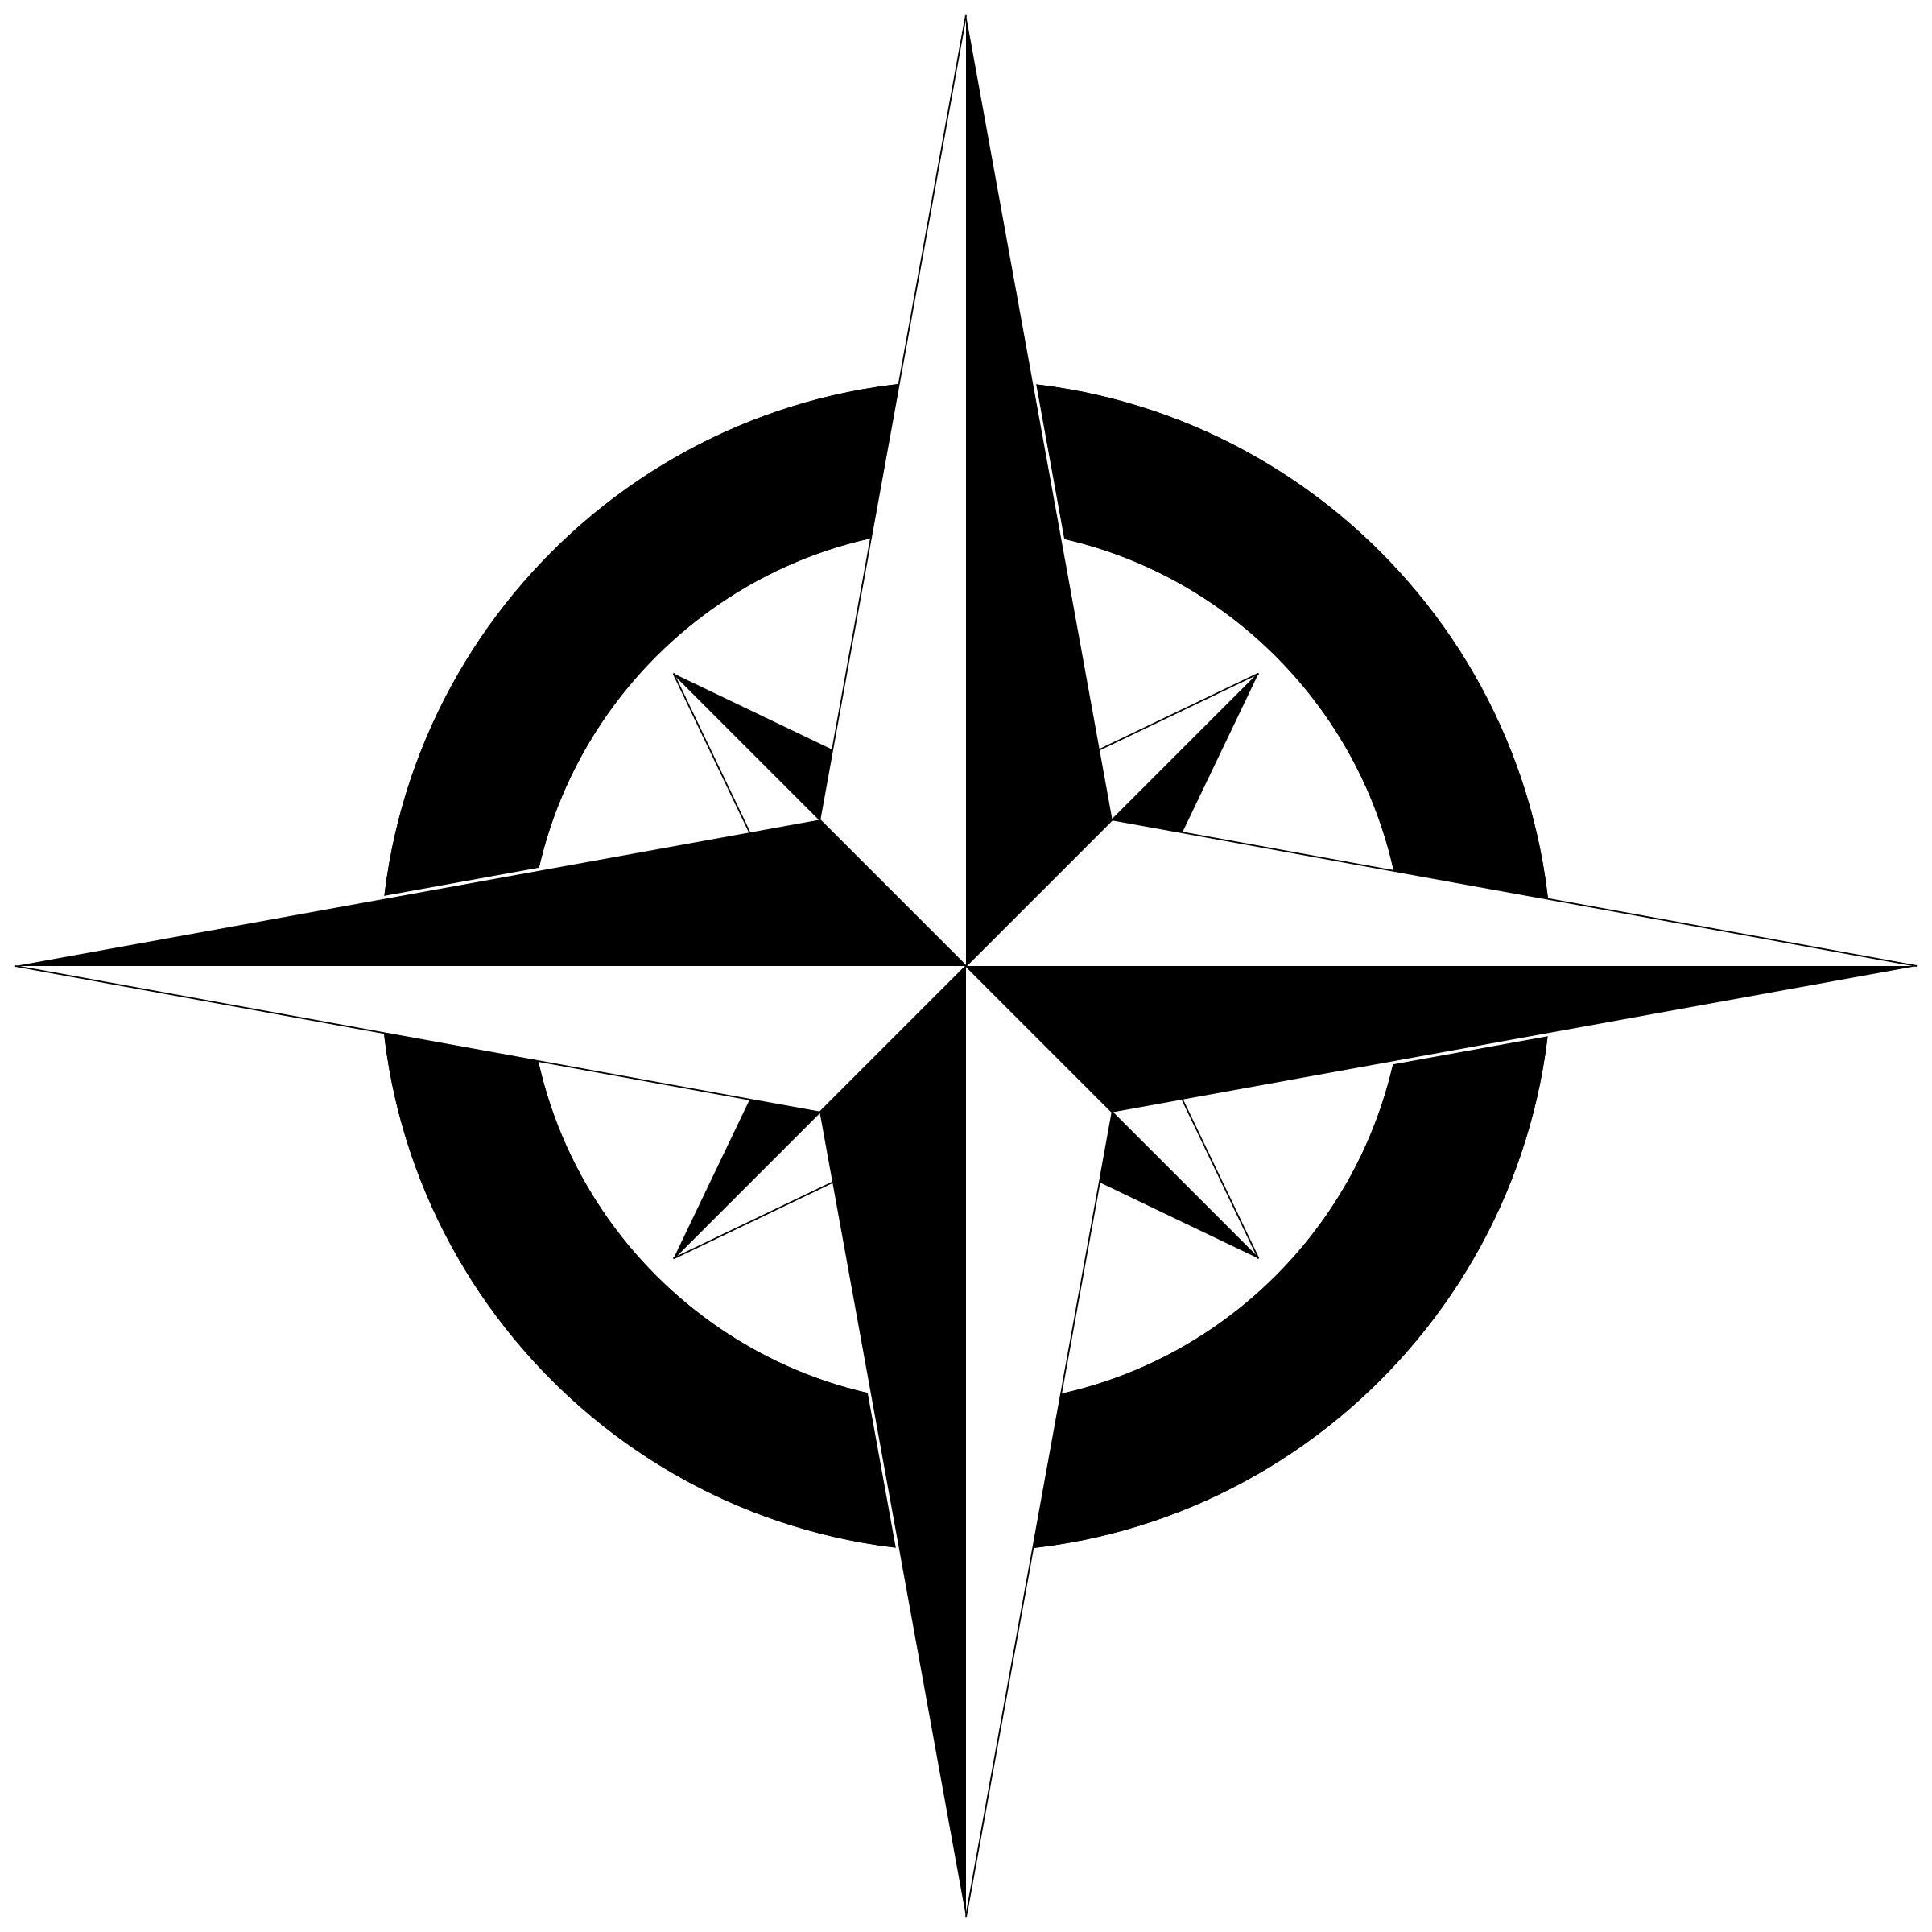 Png black and white. Compass clipart compass rose